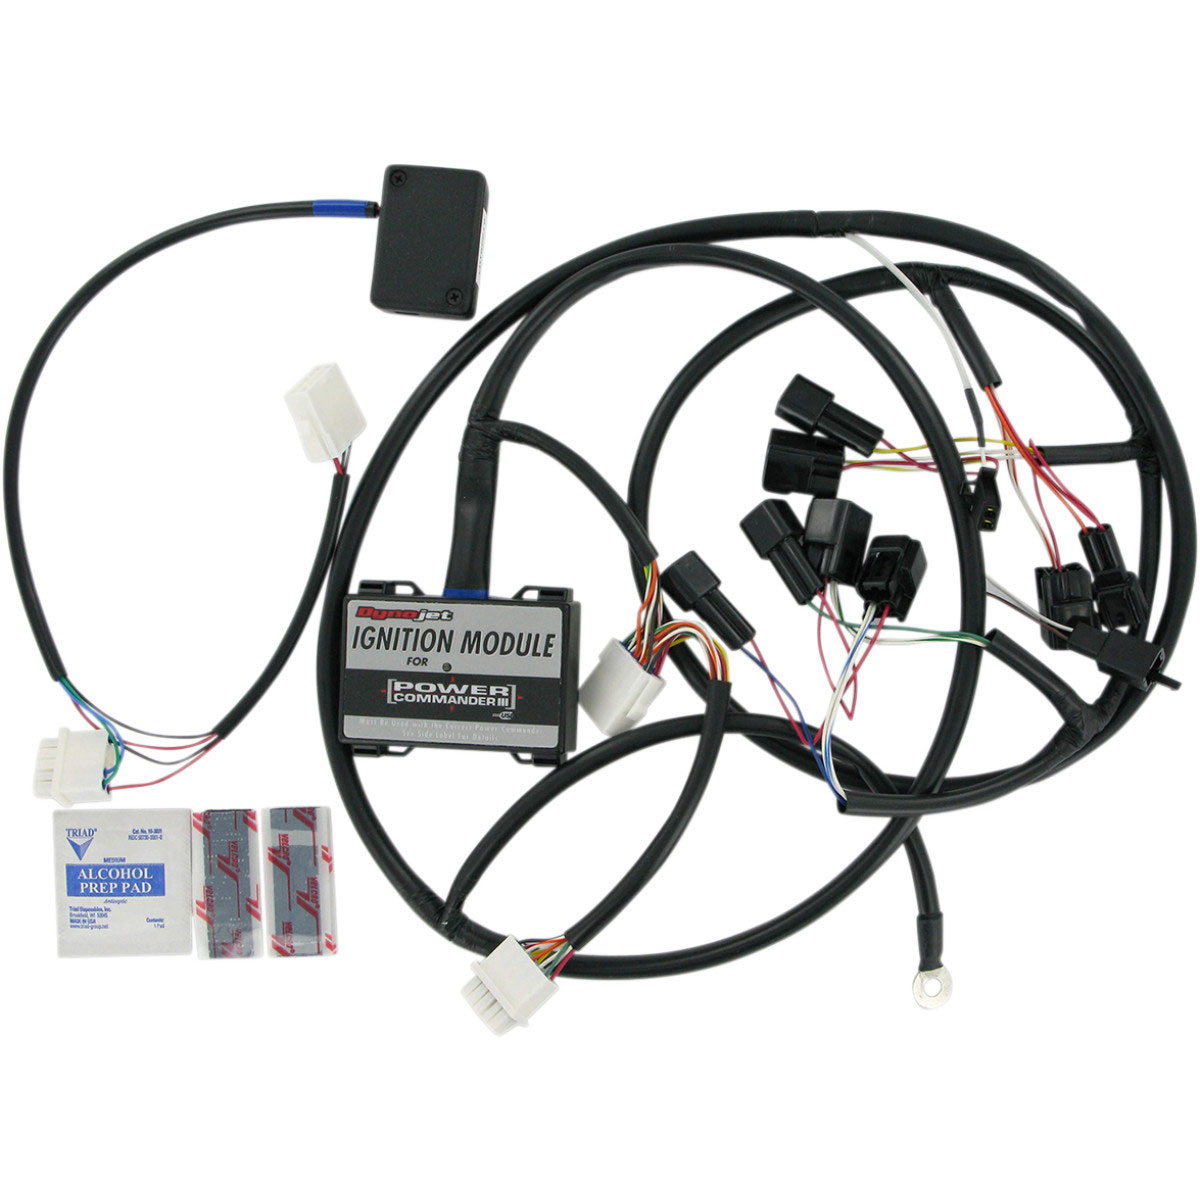 Dynojet Ignition Module for GSX-R1000 17 on ignition solenoid, ignition distributor, ignition diagram, ignition cable,